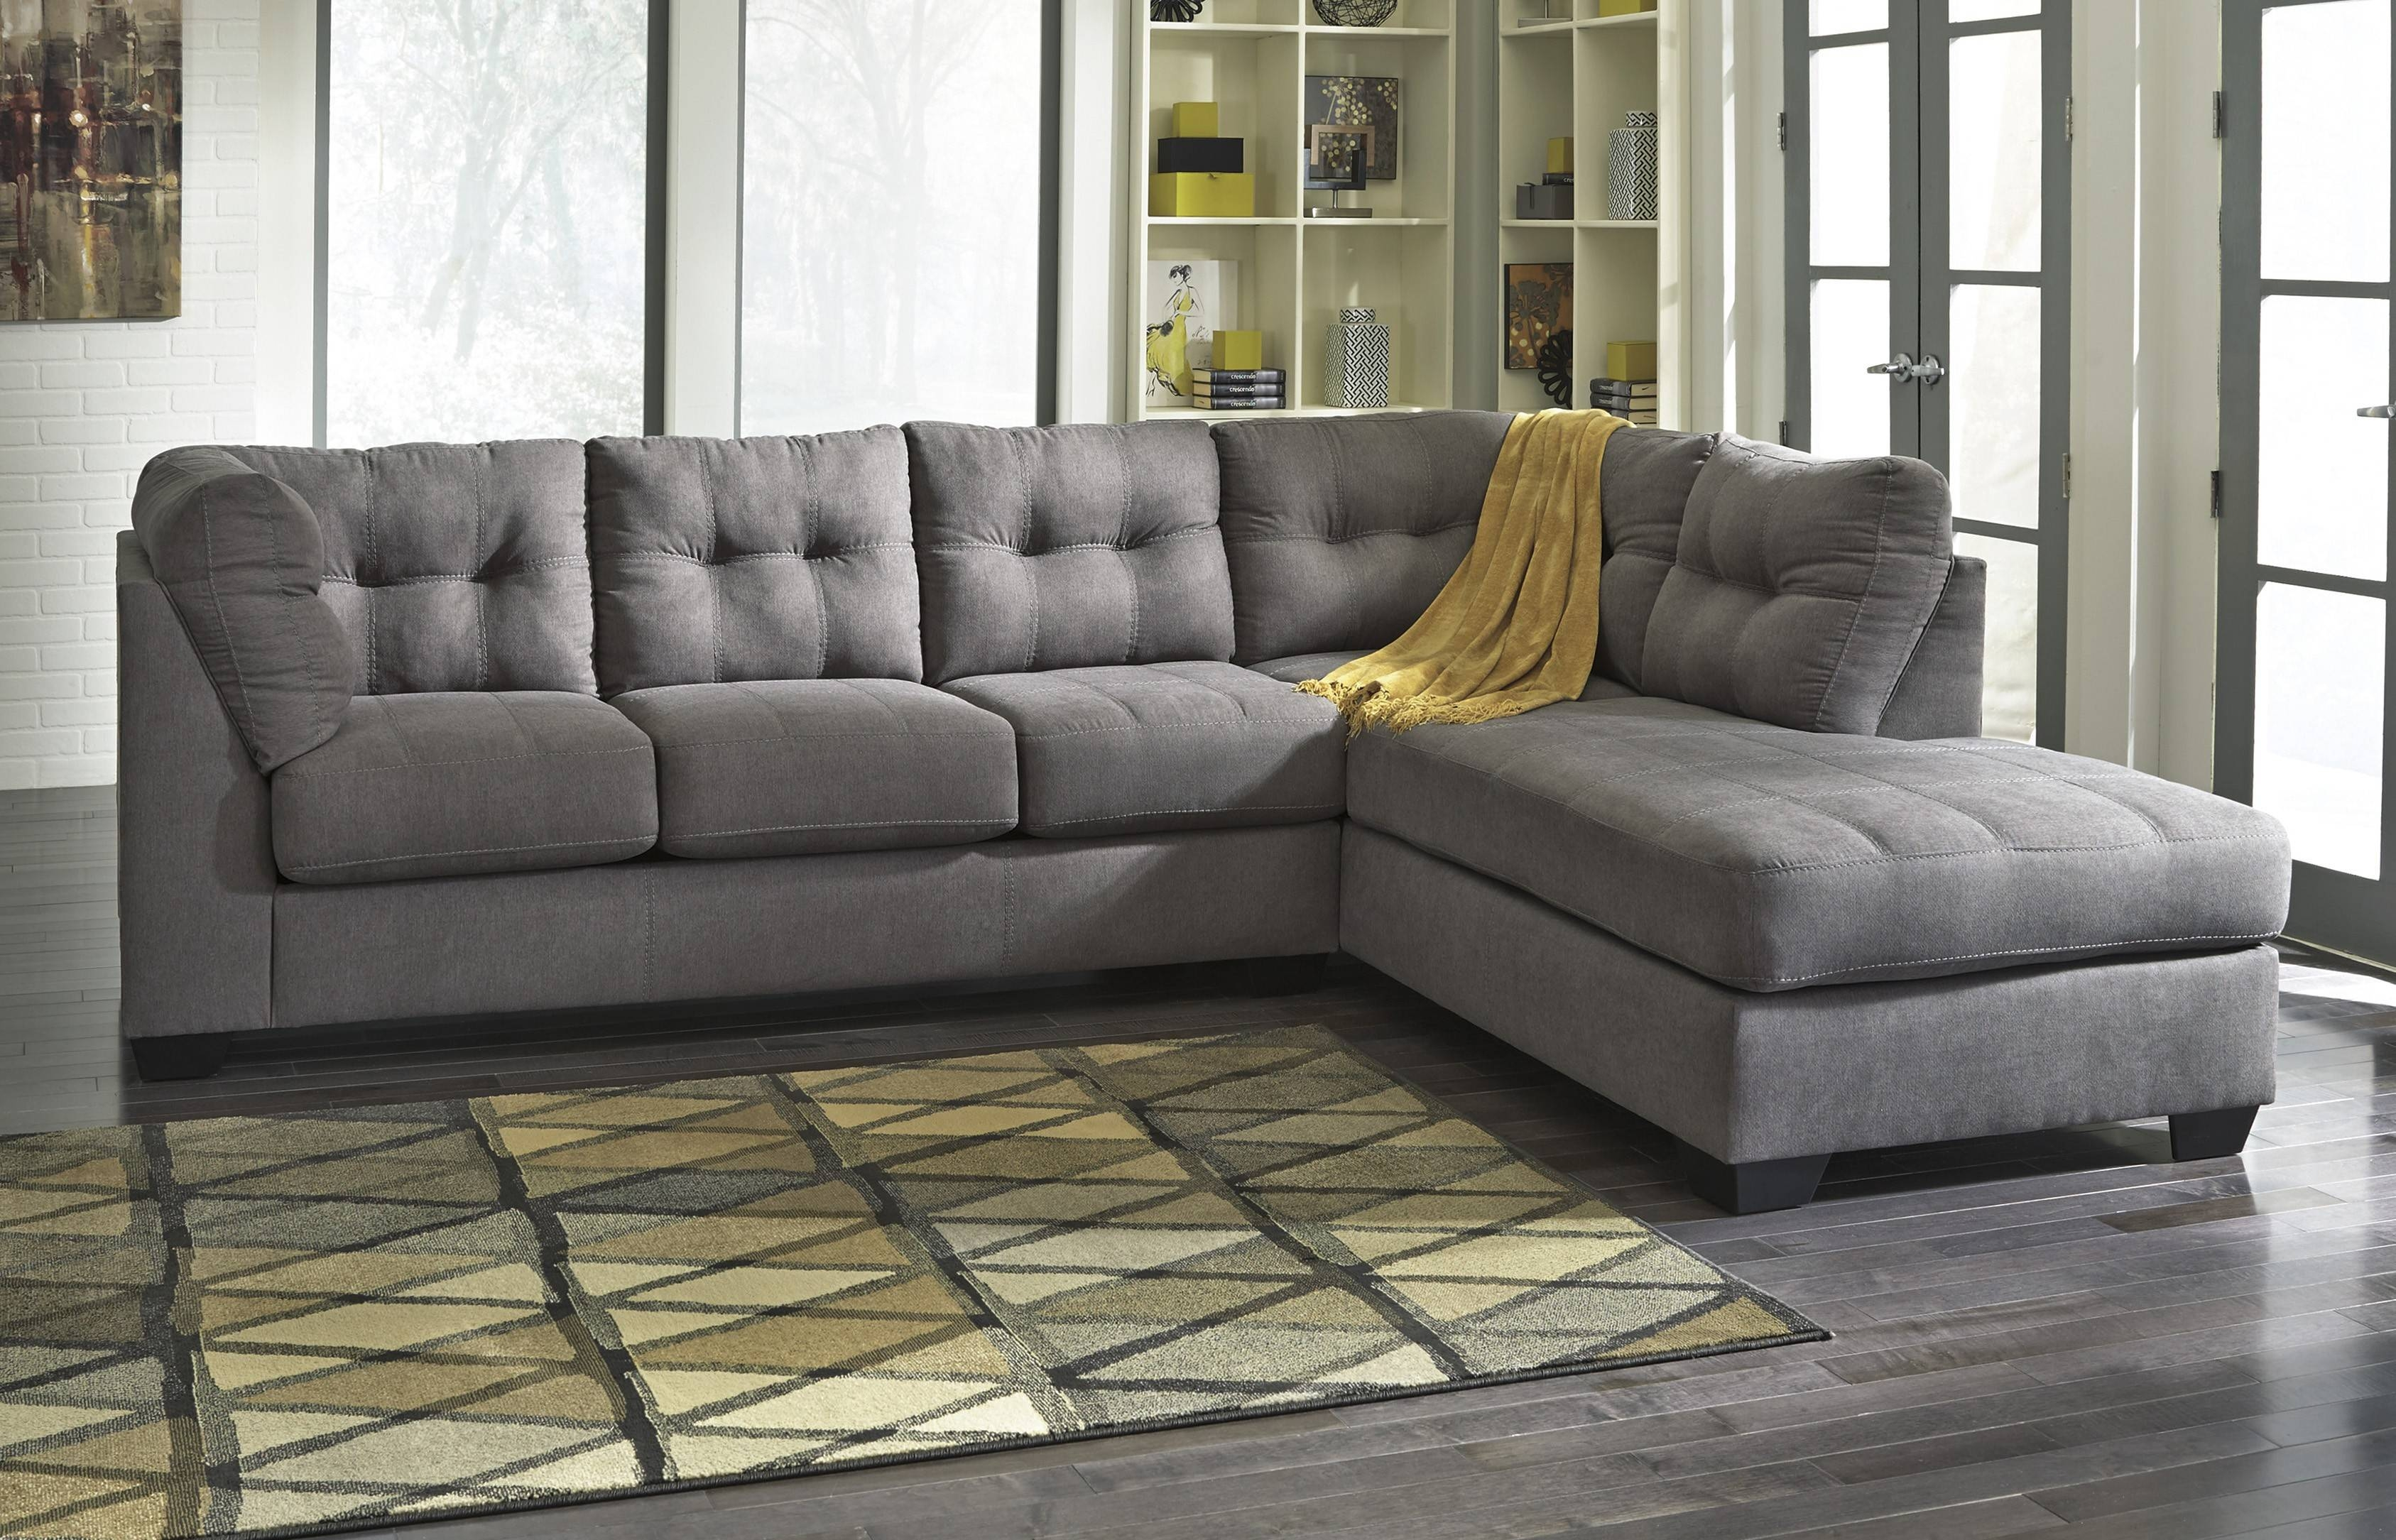 Maier Sectional (Charcoal Gray) | Ashley Furniture | Orange County with regard to Ashley Furniture Gray Sofa (Image 23 of 30)